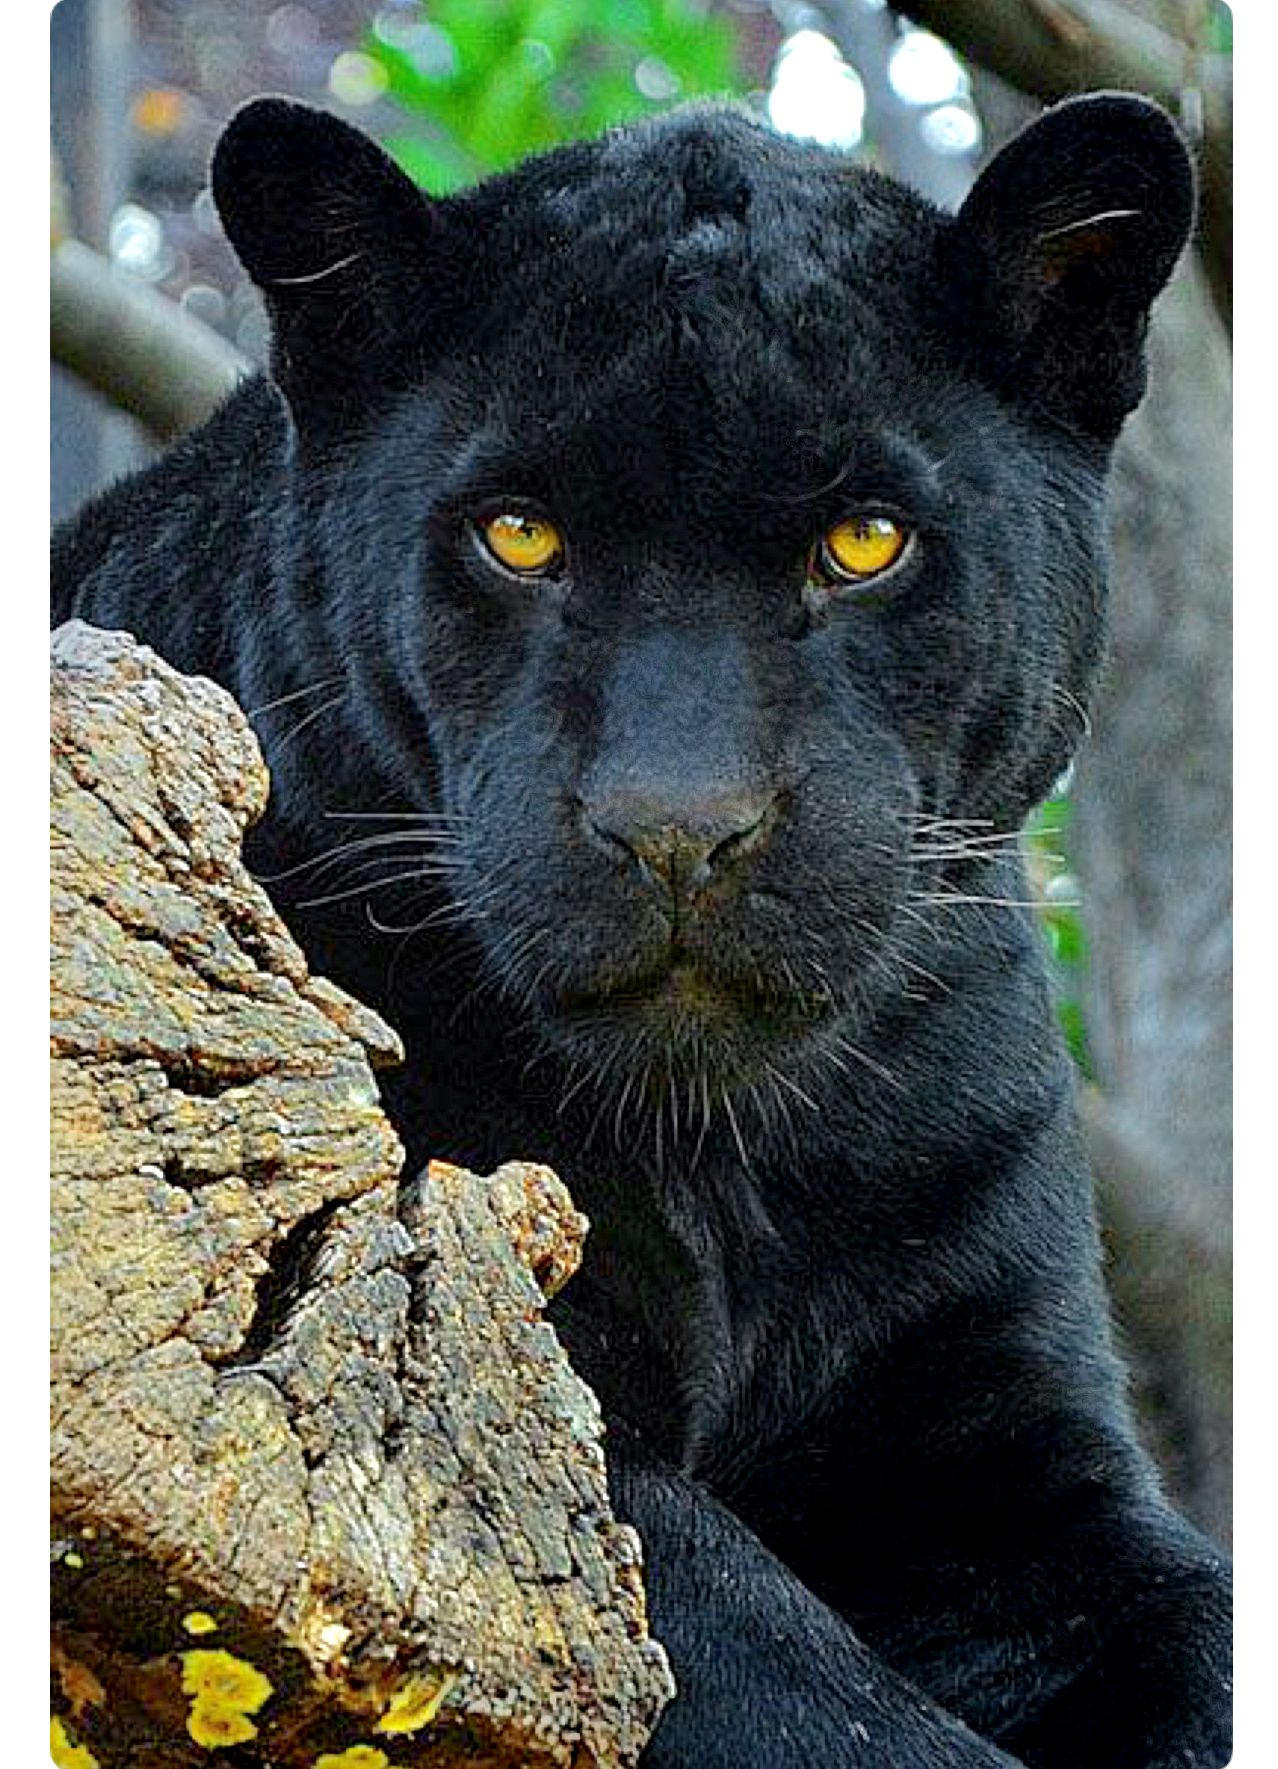 Black panther watching with golden eyes. These big cats ...